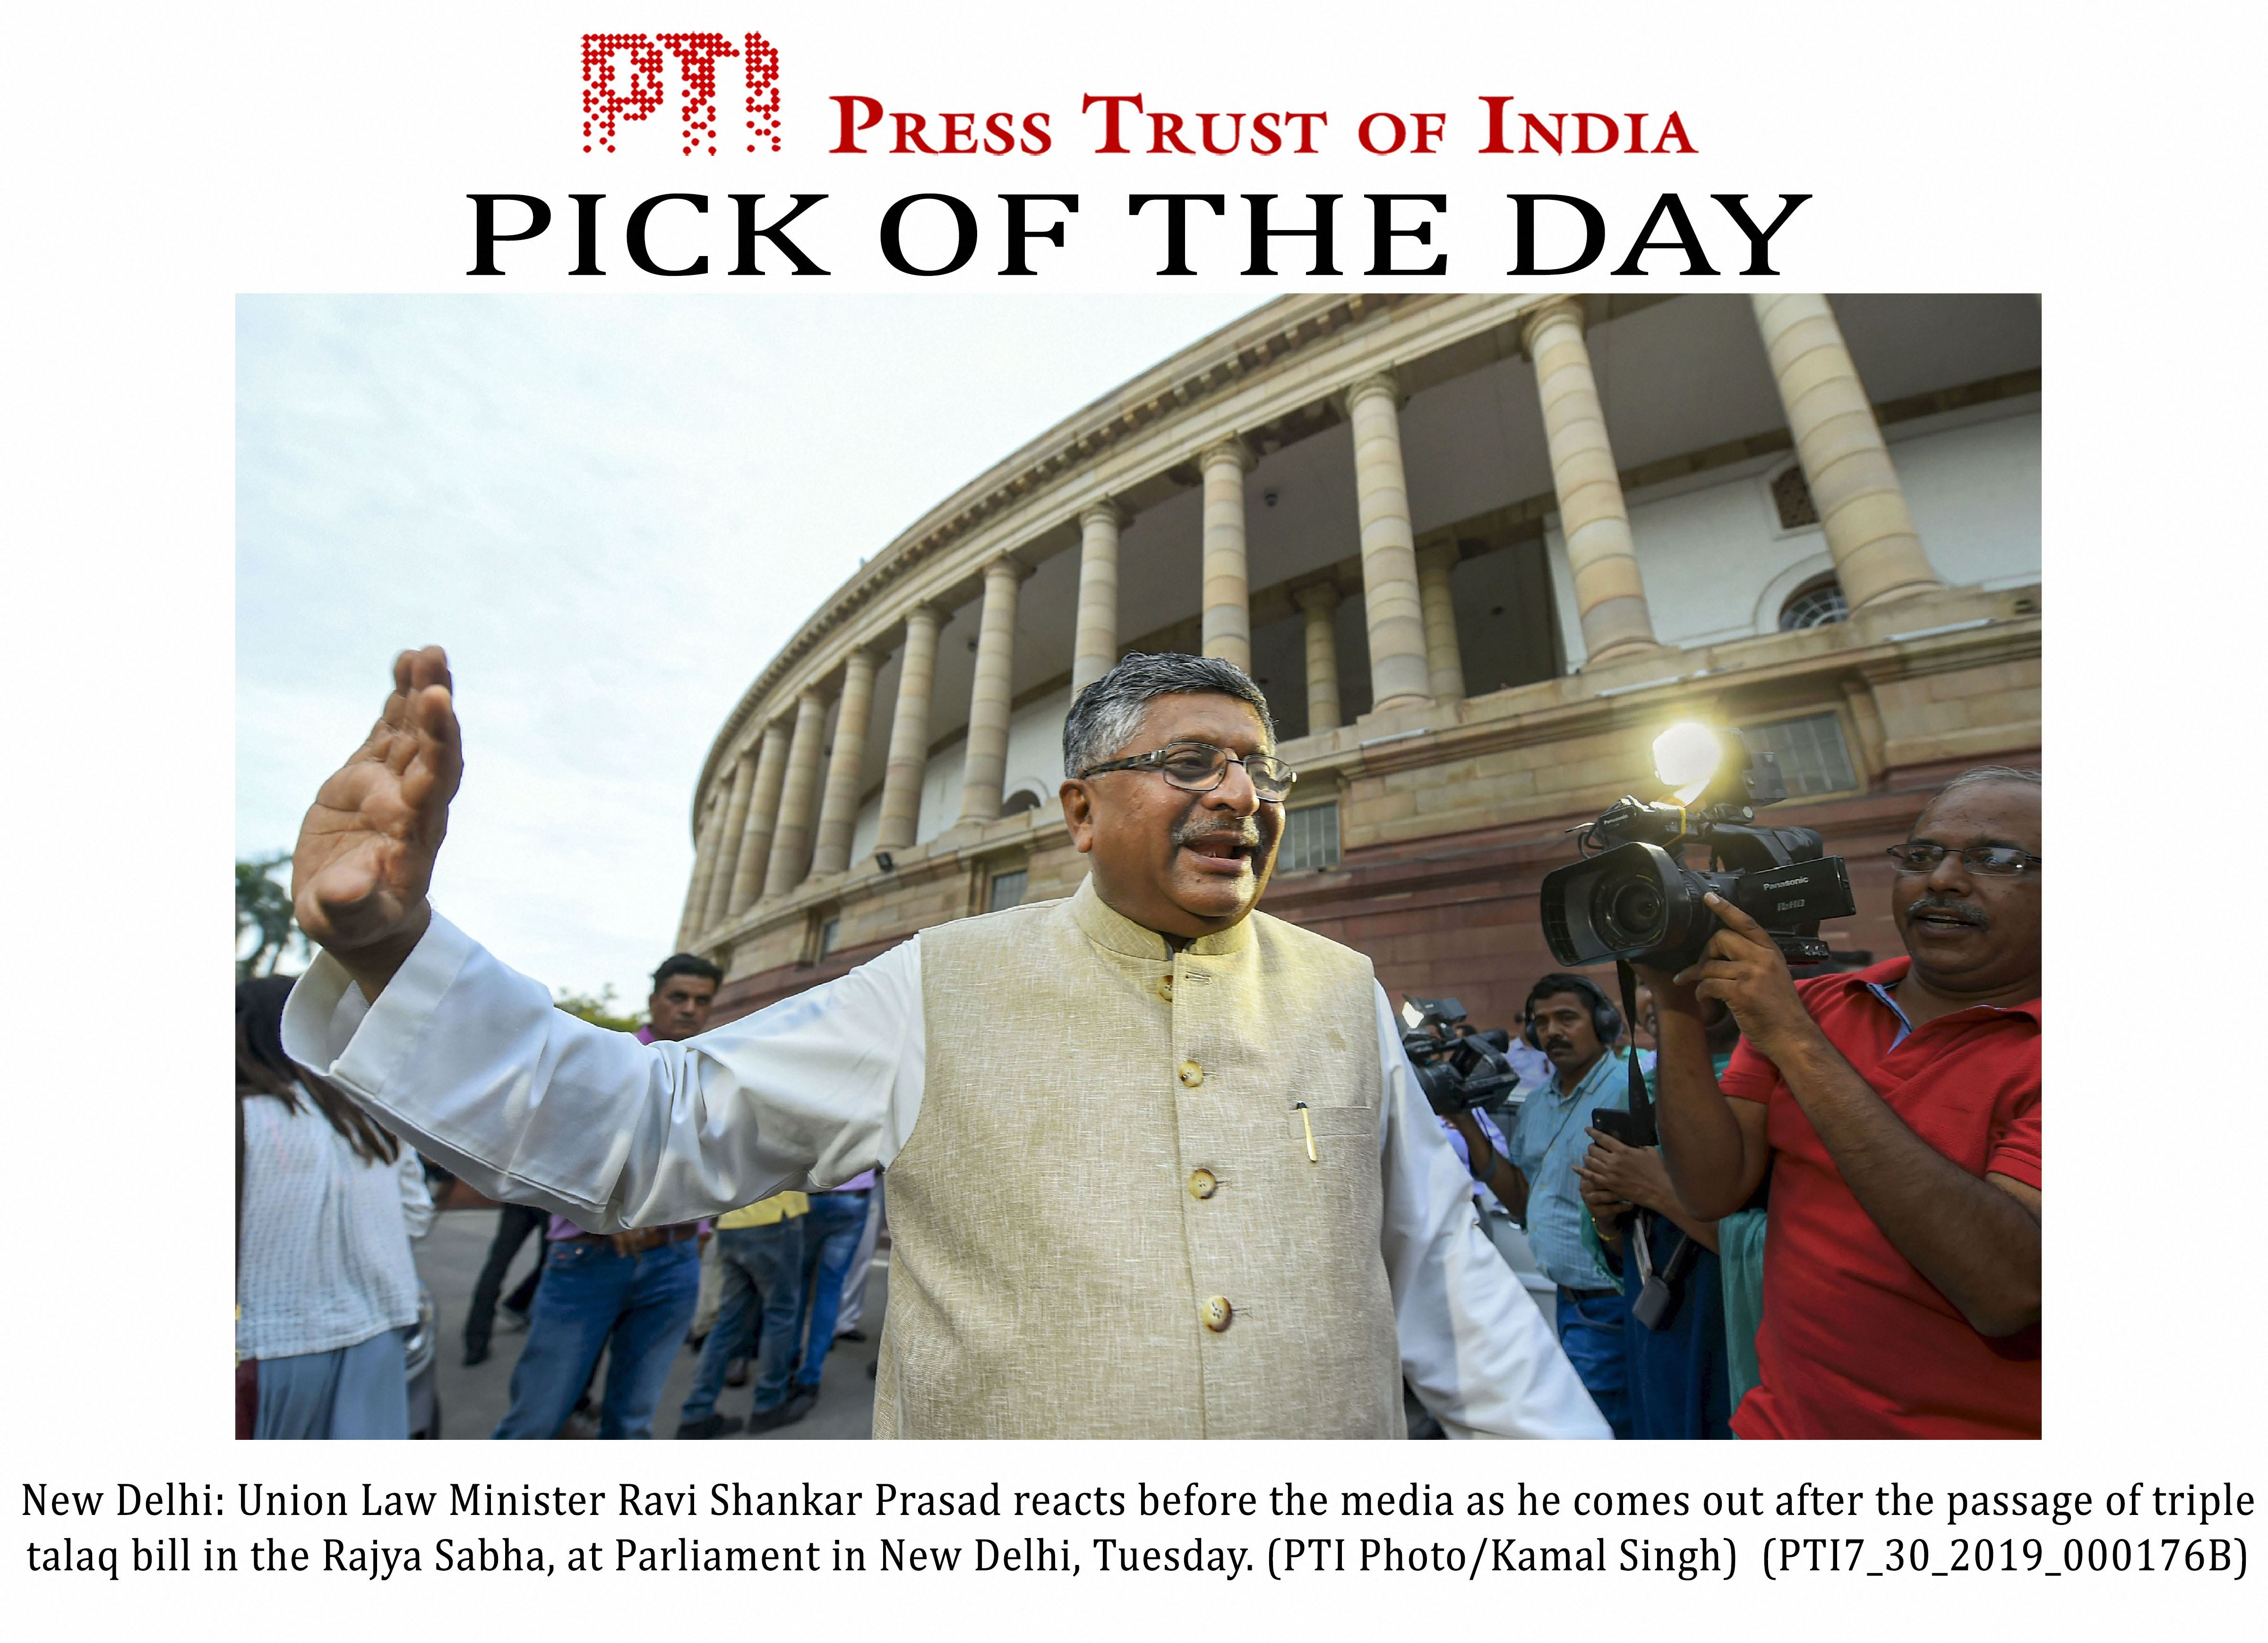 Union law minister Ravi Shankar Prasad reacts before the media as he comes out after the passage of instant triple talaq bill in the Rajya Sabha on Tuesday.